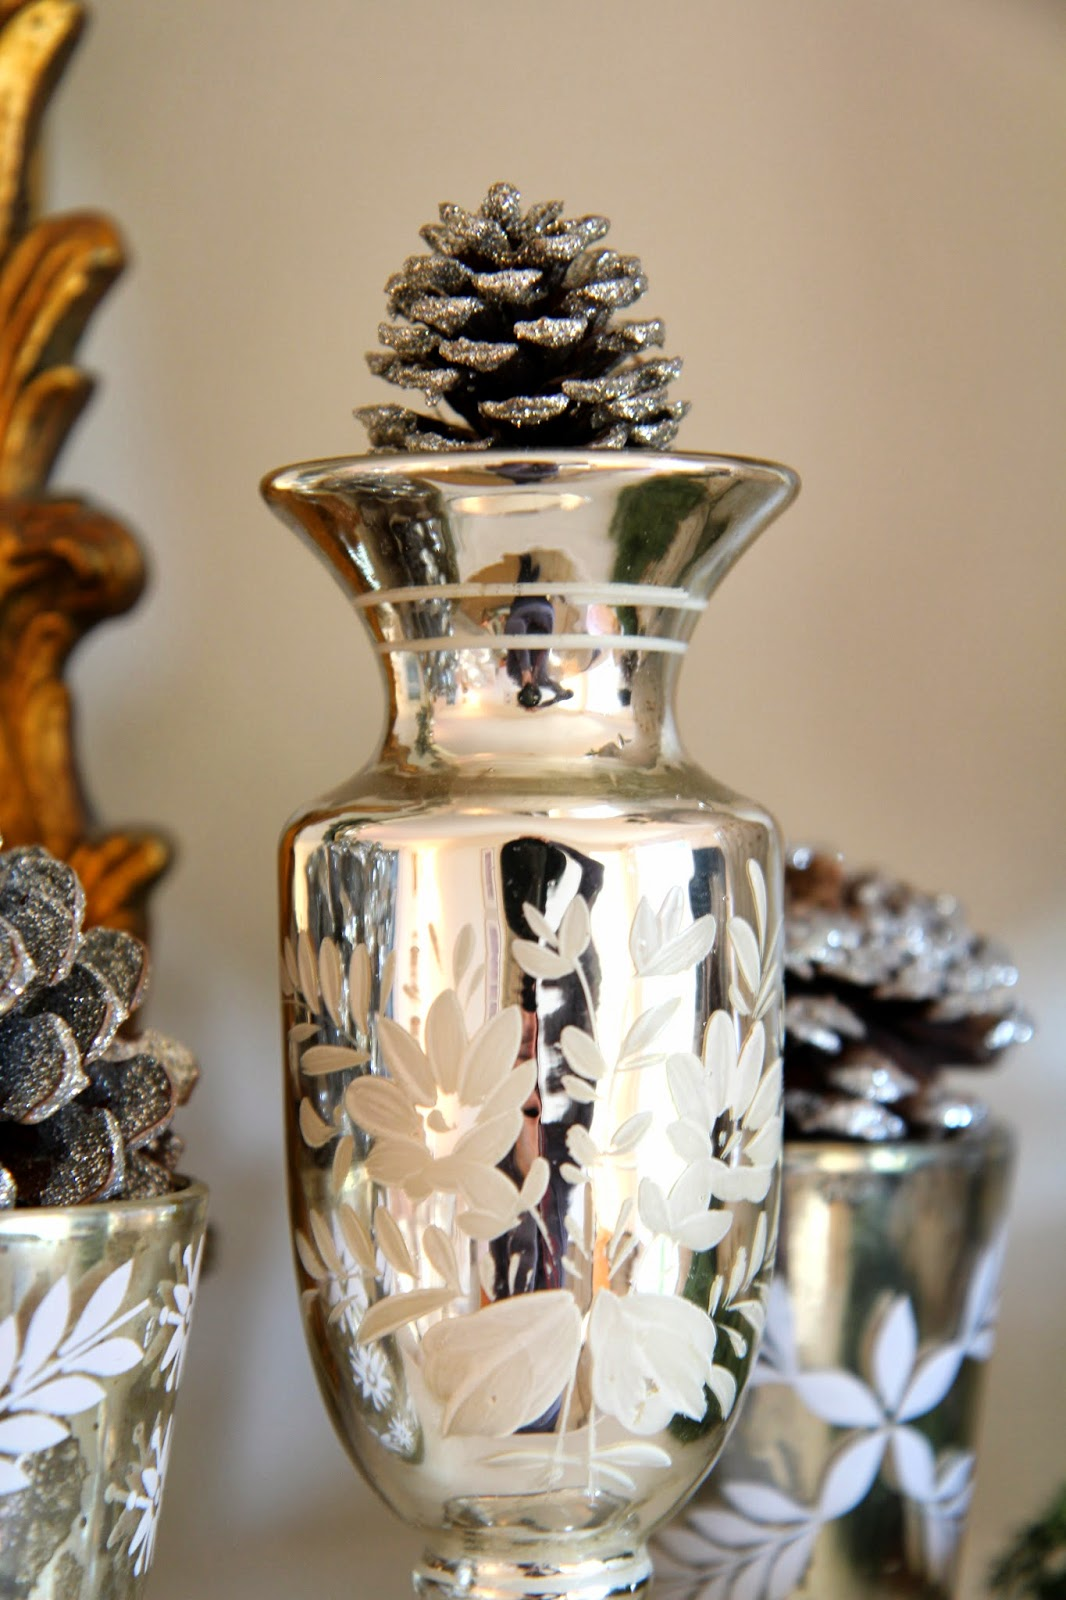 Mercury Glass and Glittered Pinecones